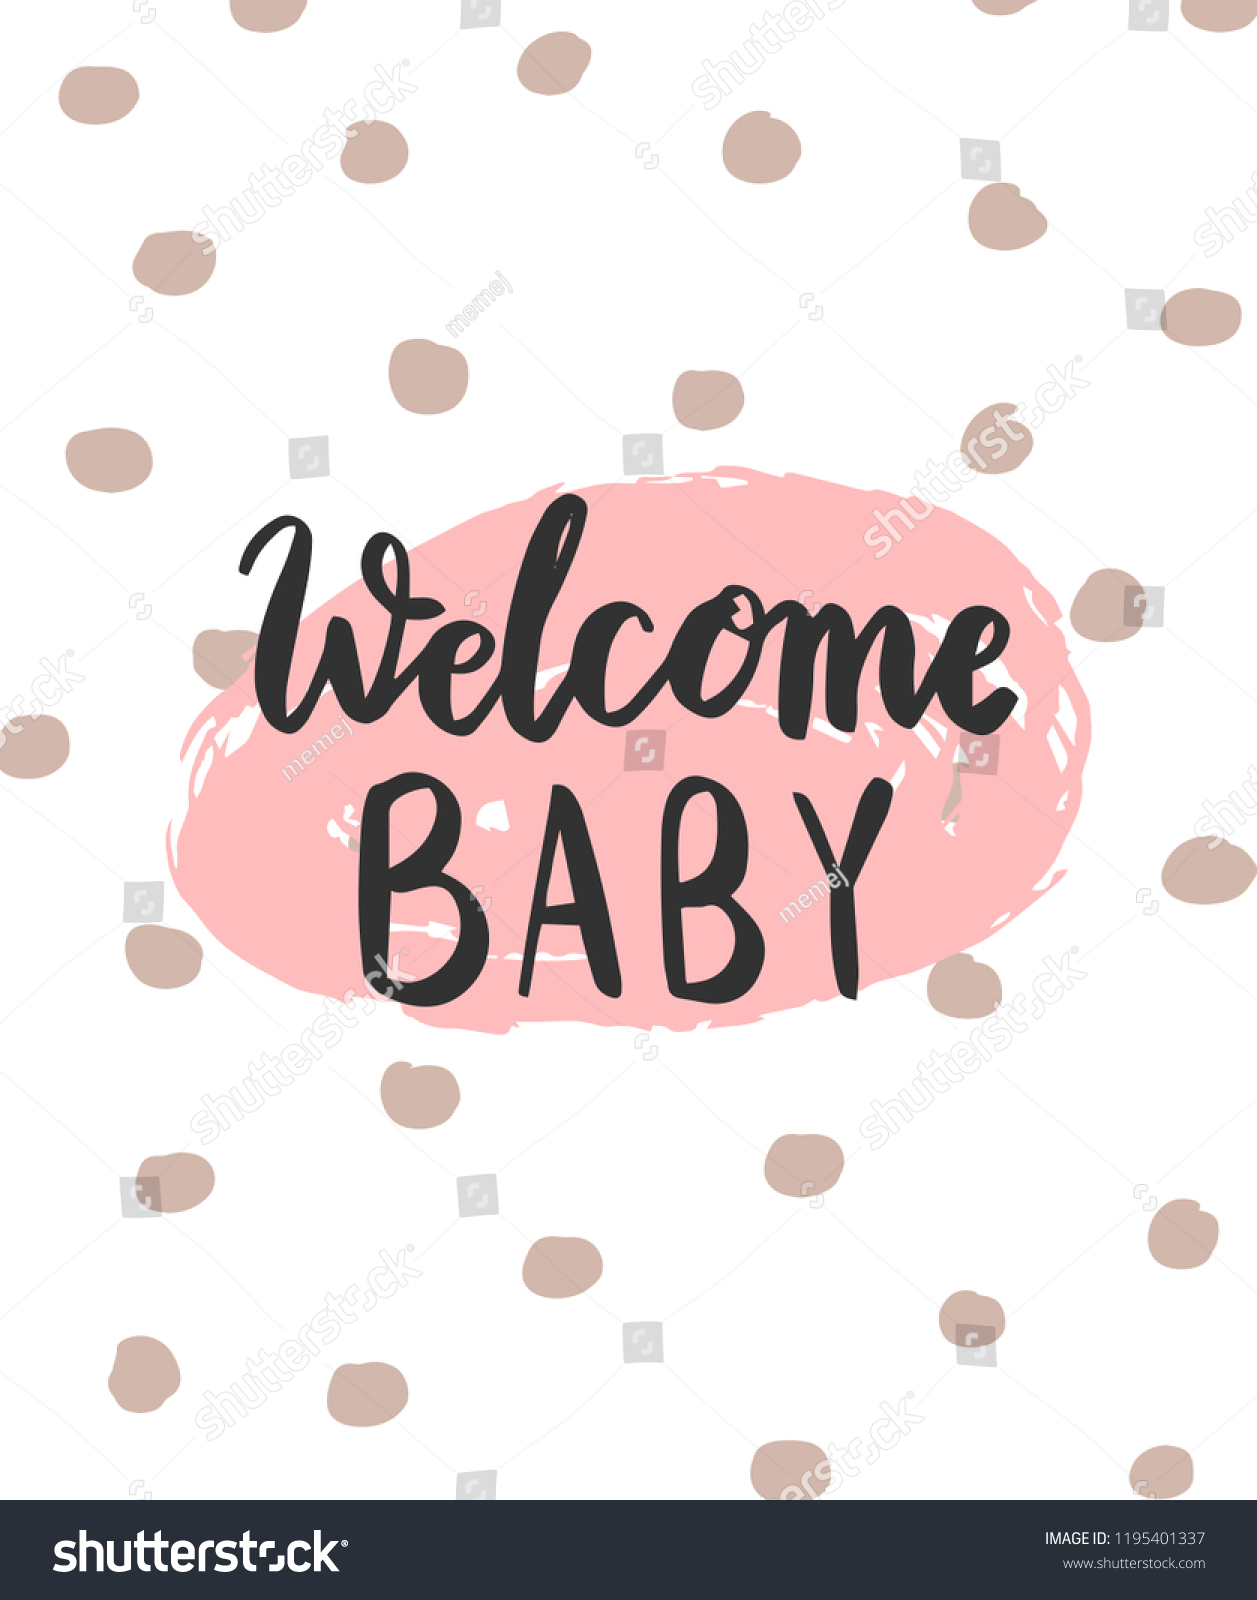 Baby Shower Welcome Baby Card Design Stock Vector Royalty Free